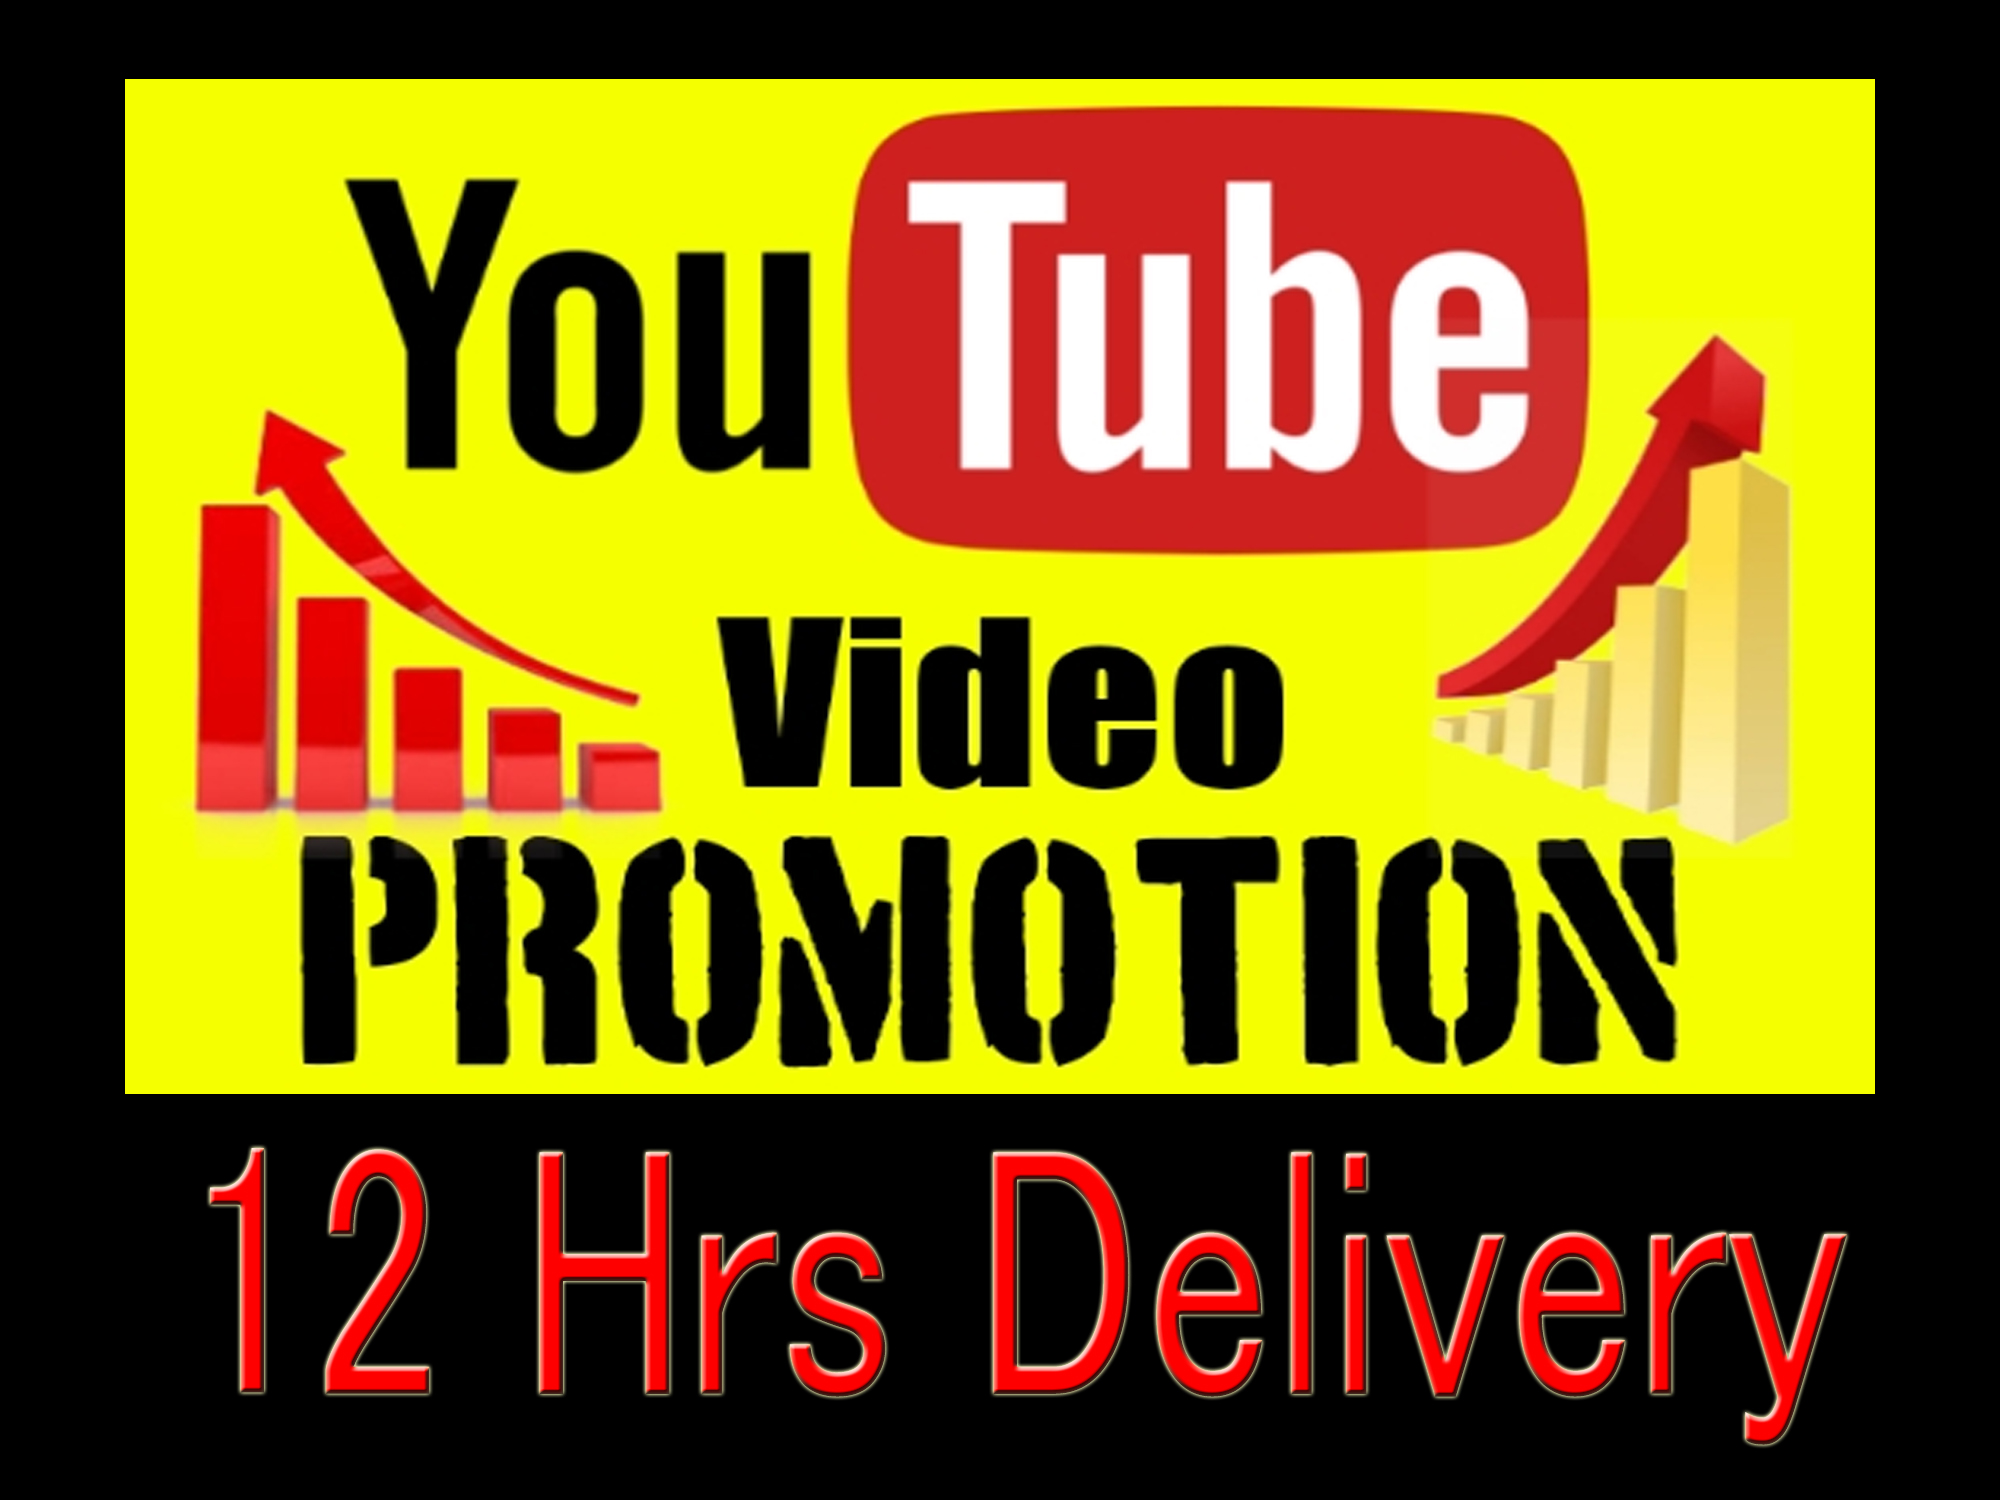 Organic HQ HR YouTube Video Promotion And Social Media Marketing